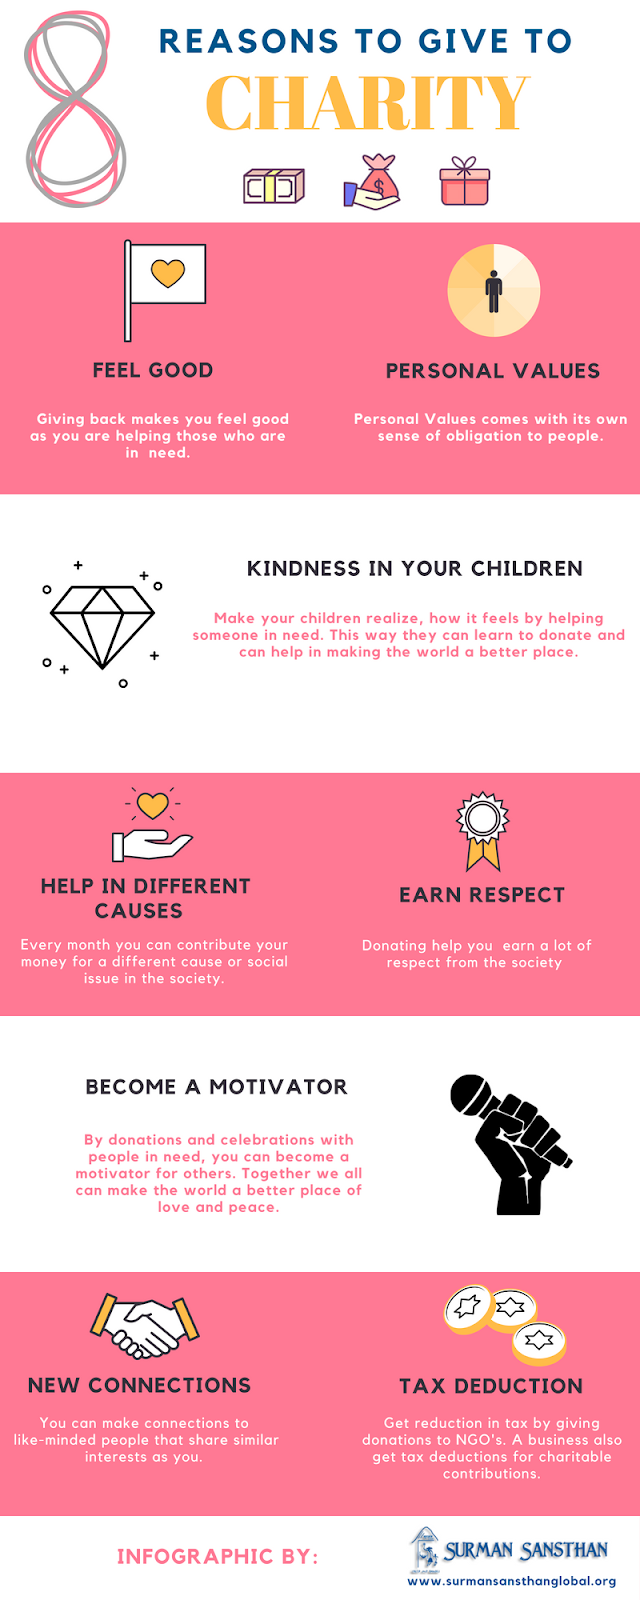 4 Reasons to Donate to Charity in India Infographic SurmanSansthan NGO